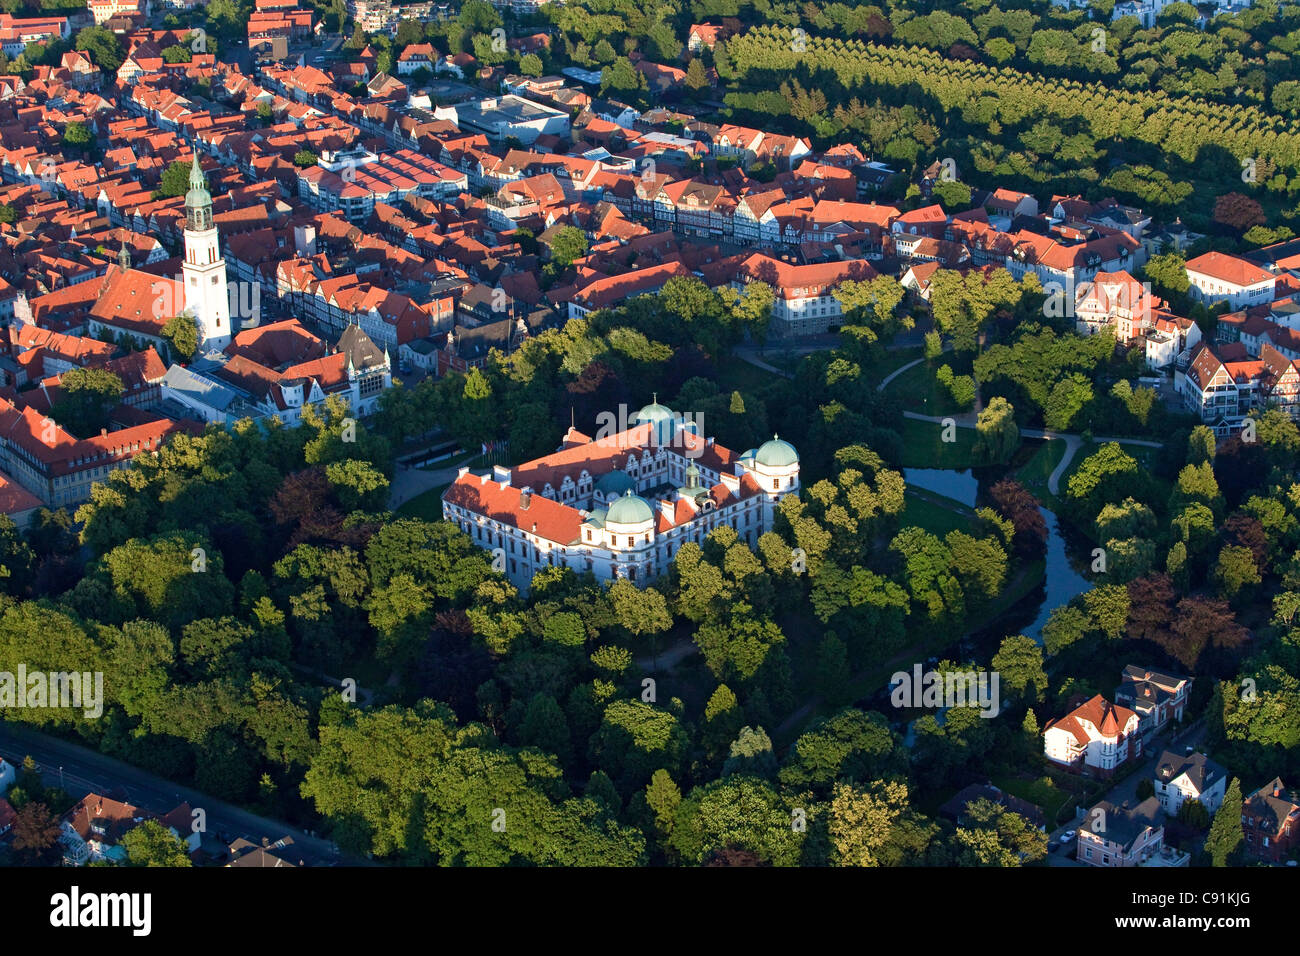 Aerial view of Celle castle and gardens red roofs of the old town church and Celle avenue of trees in the French - Stock Image